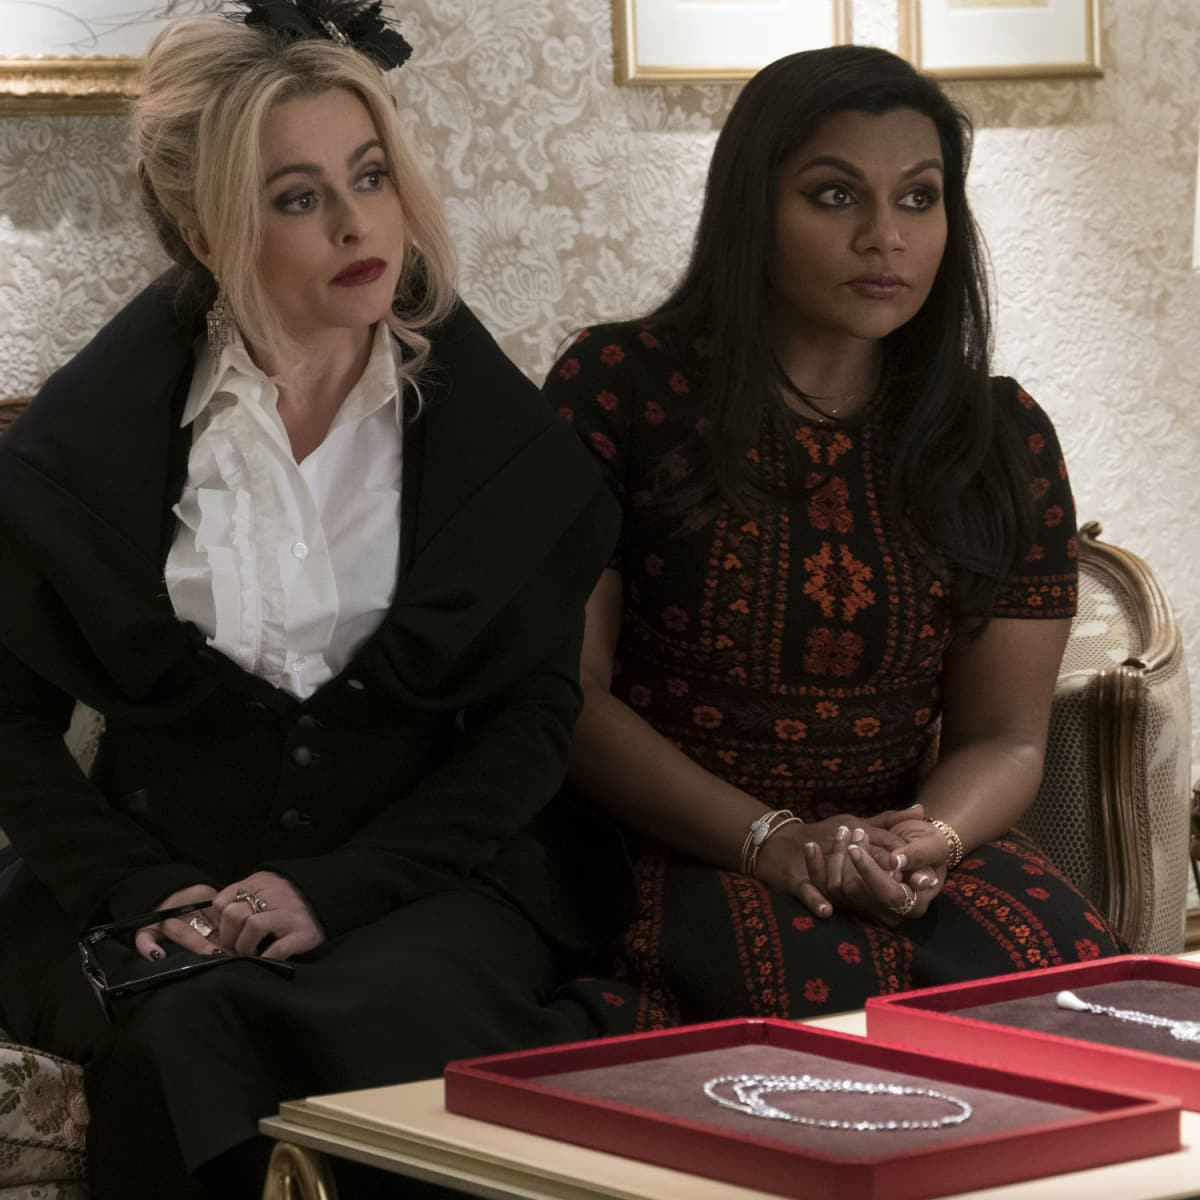 Helena Bonham Carter and Mindy Kaling in Ocean's 8